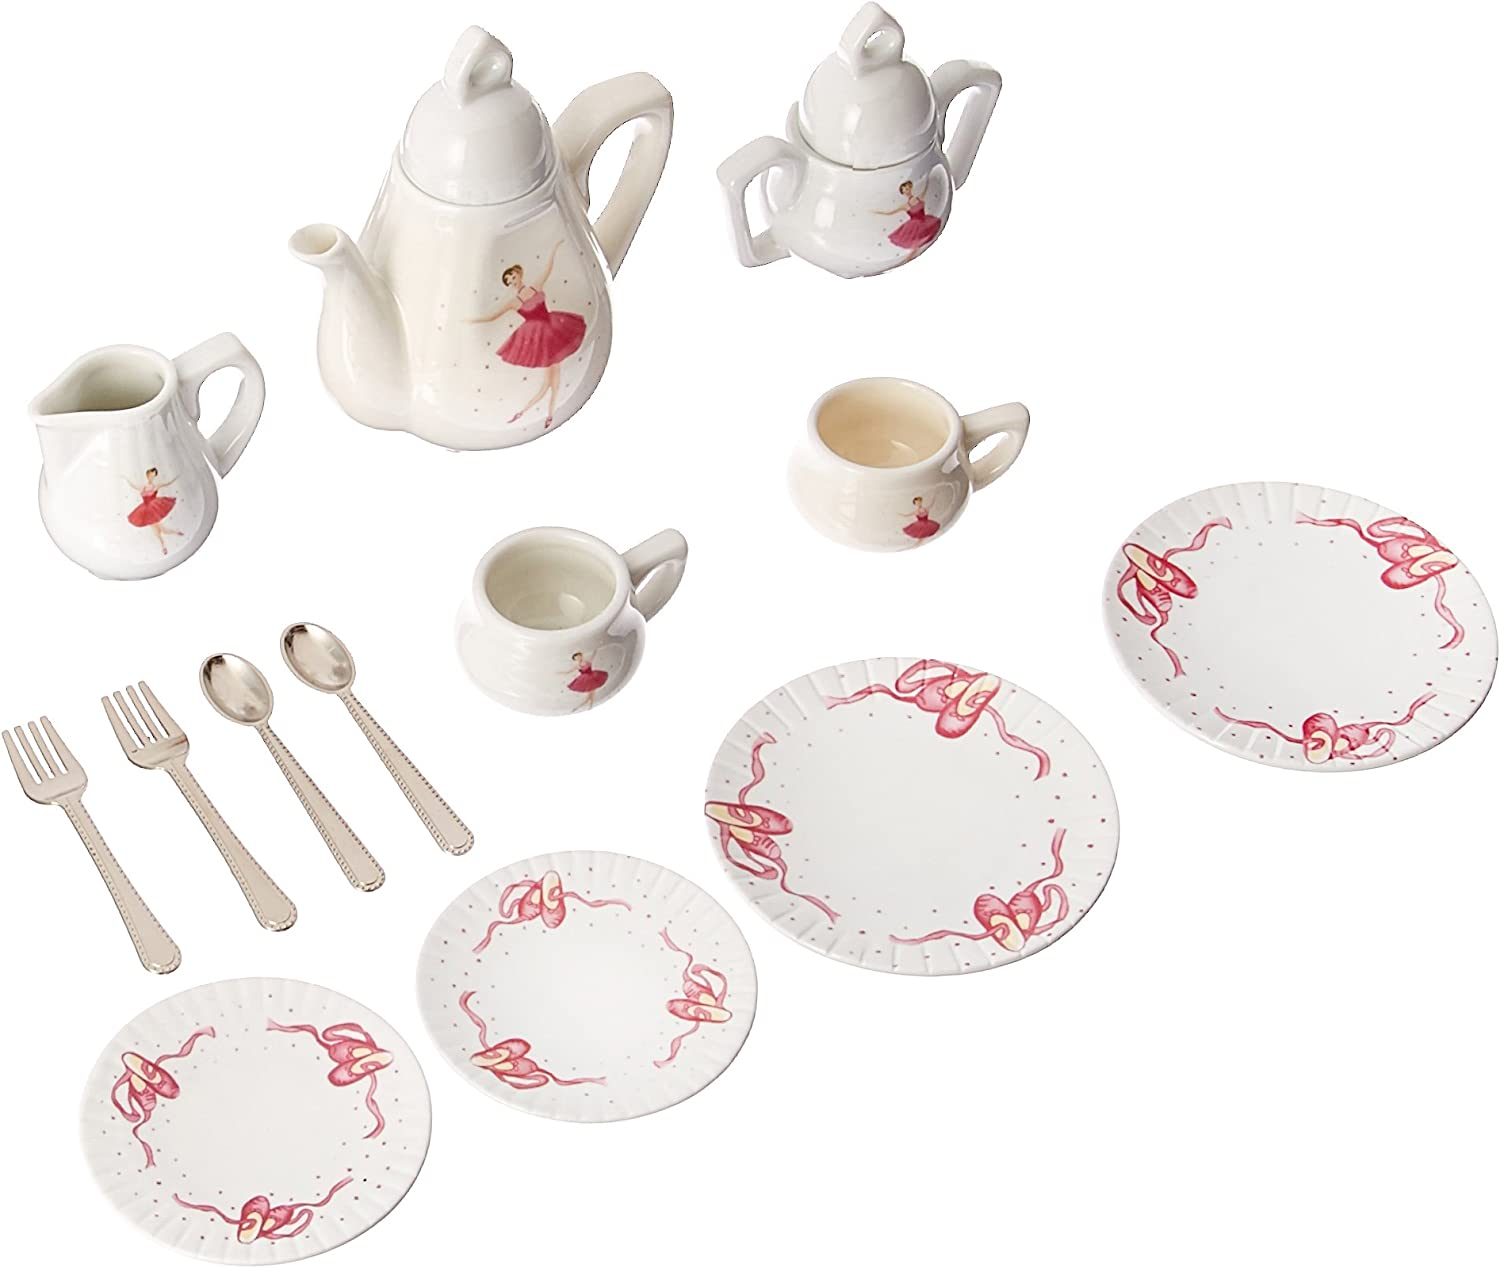 Delton Products Ballerina Tea Set for Two in Basket (18 Piece)